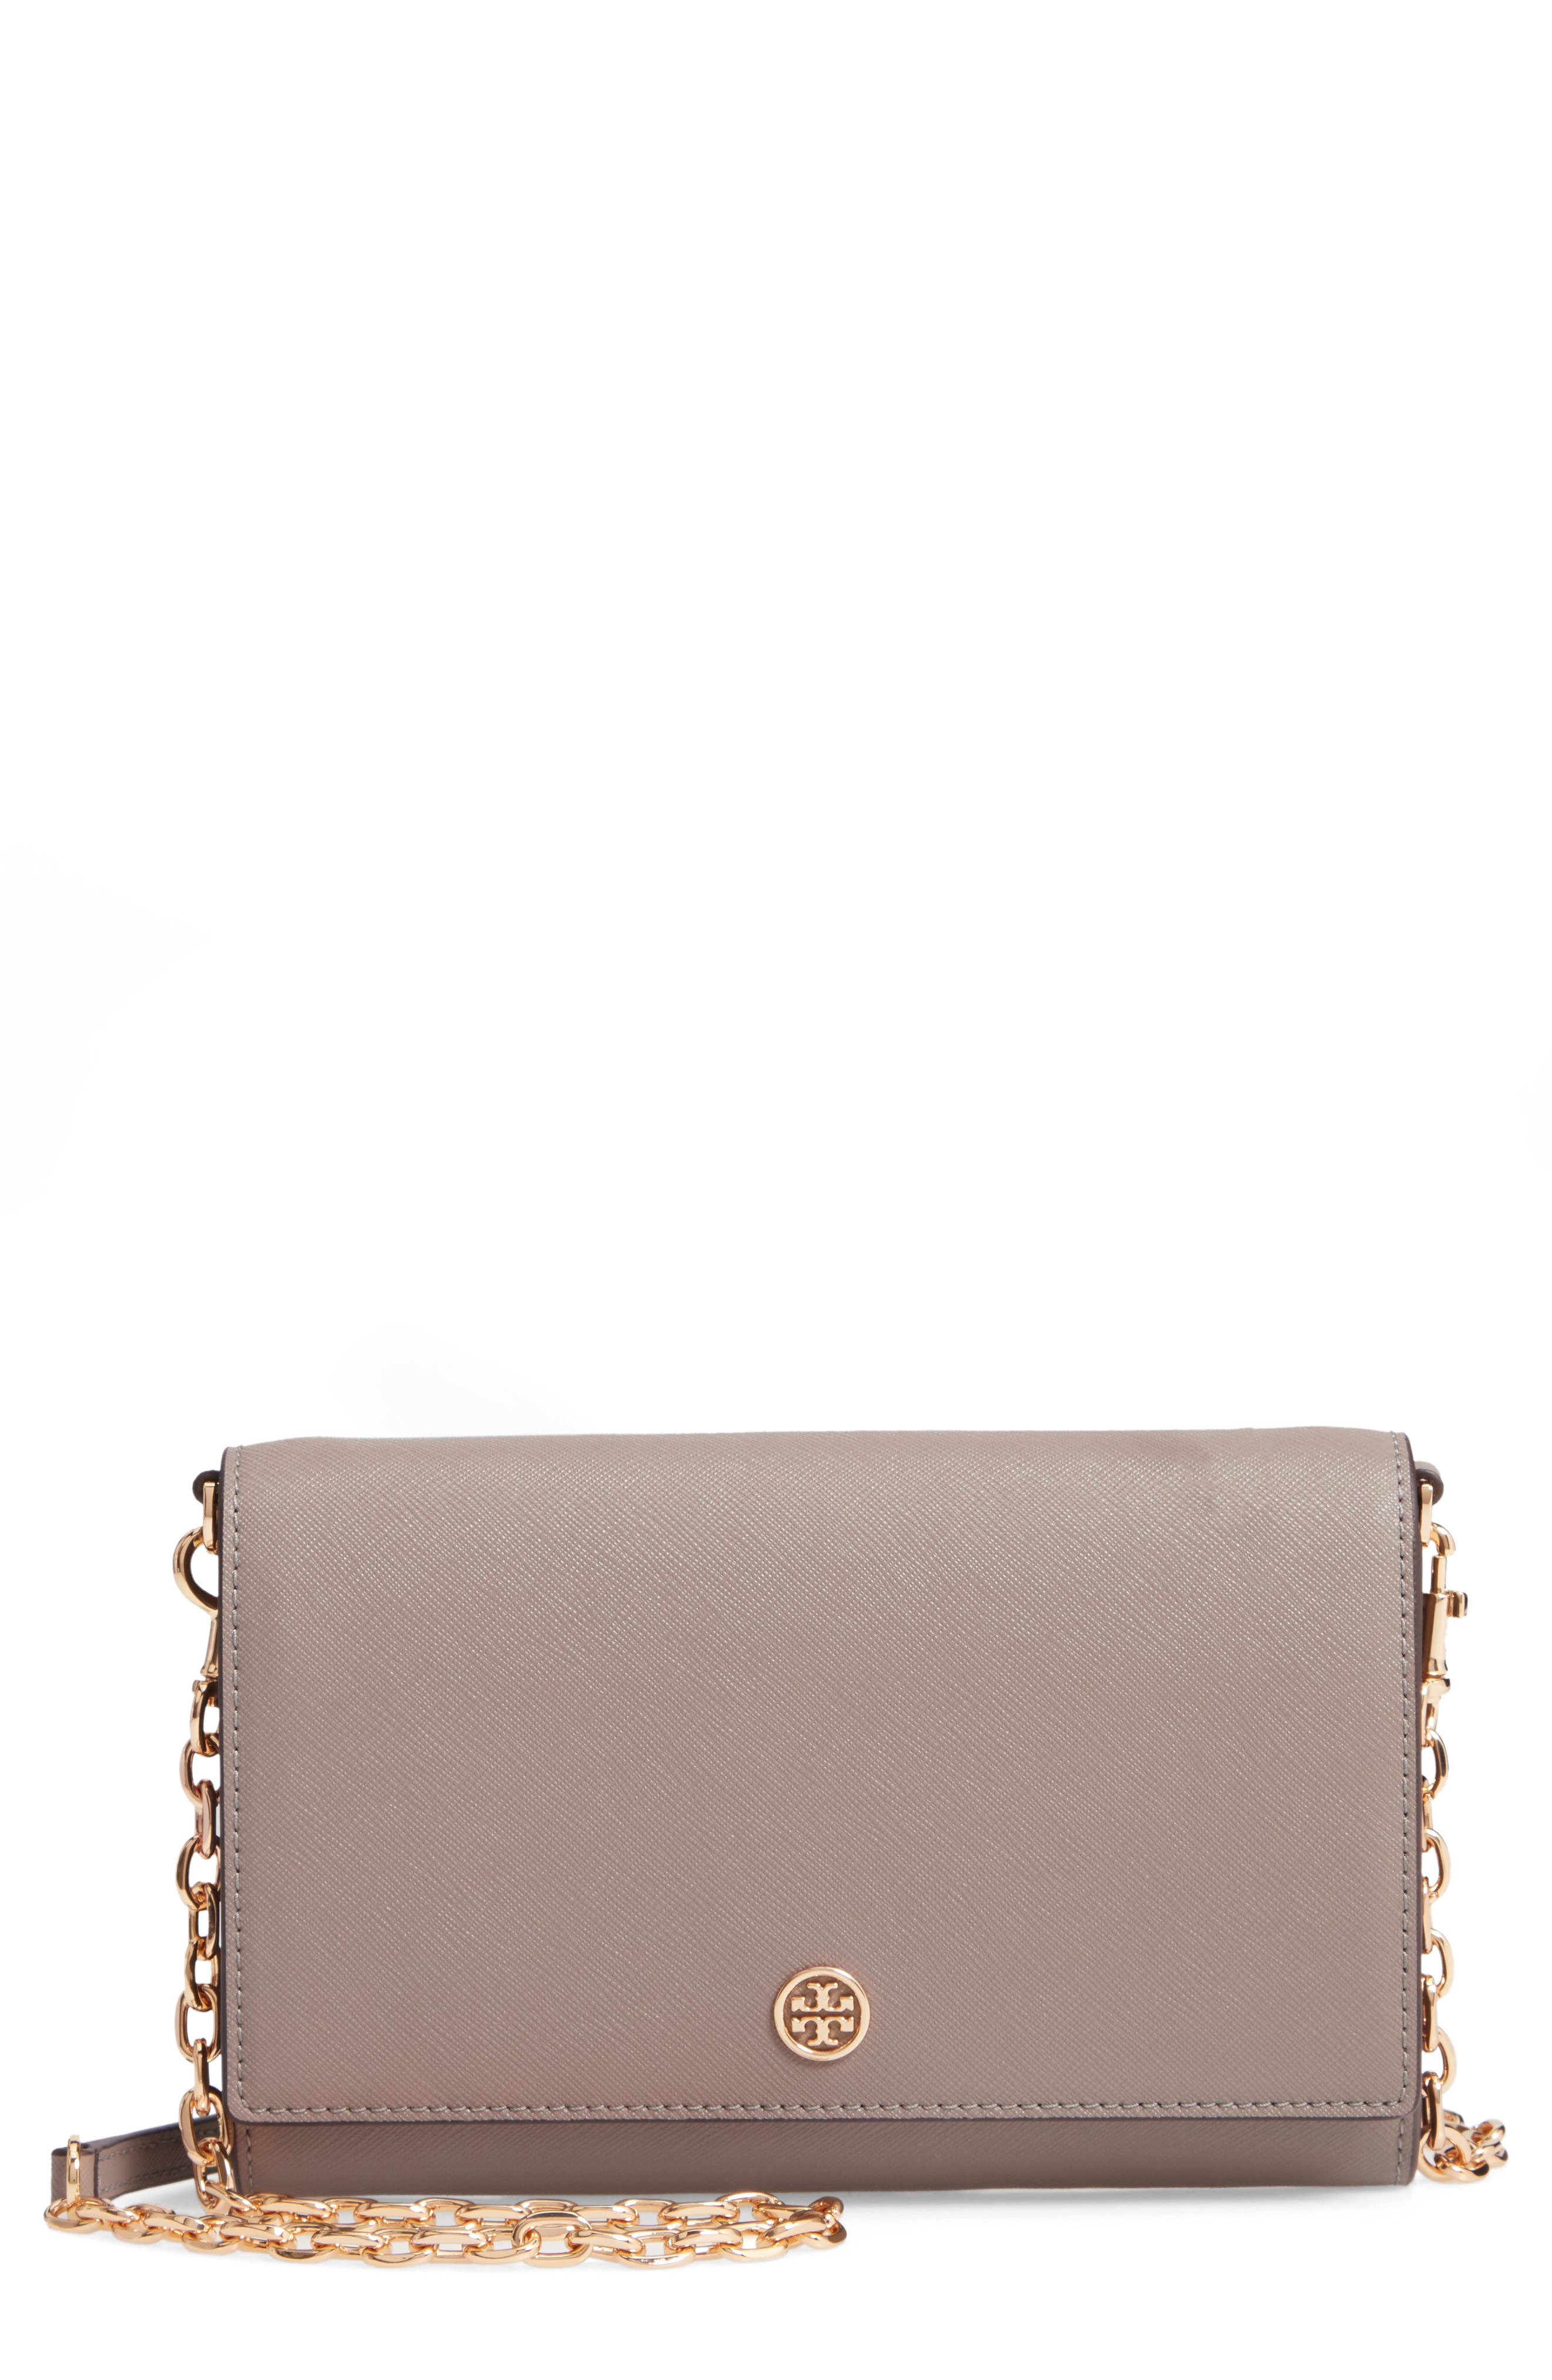 TORY BURCH, Robinson Leather Wallet on a Chain, Main thumbnail 1, color, GRAY HERON